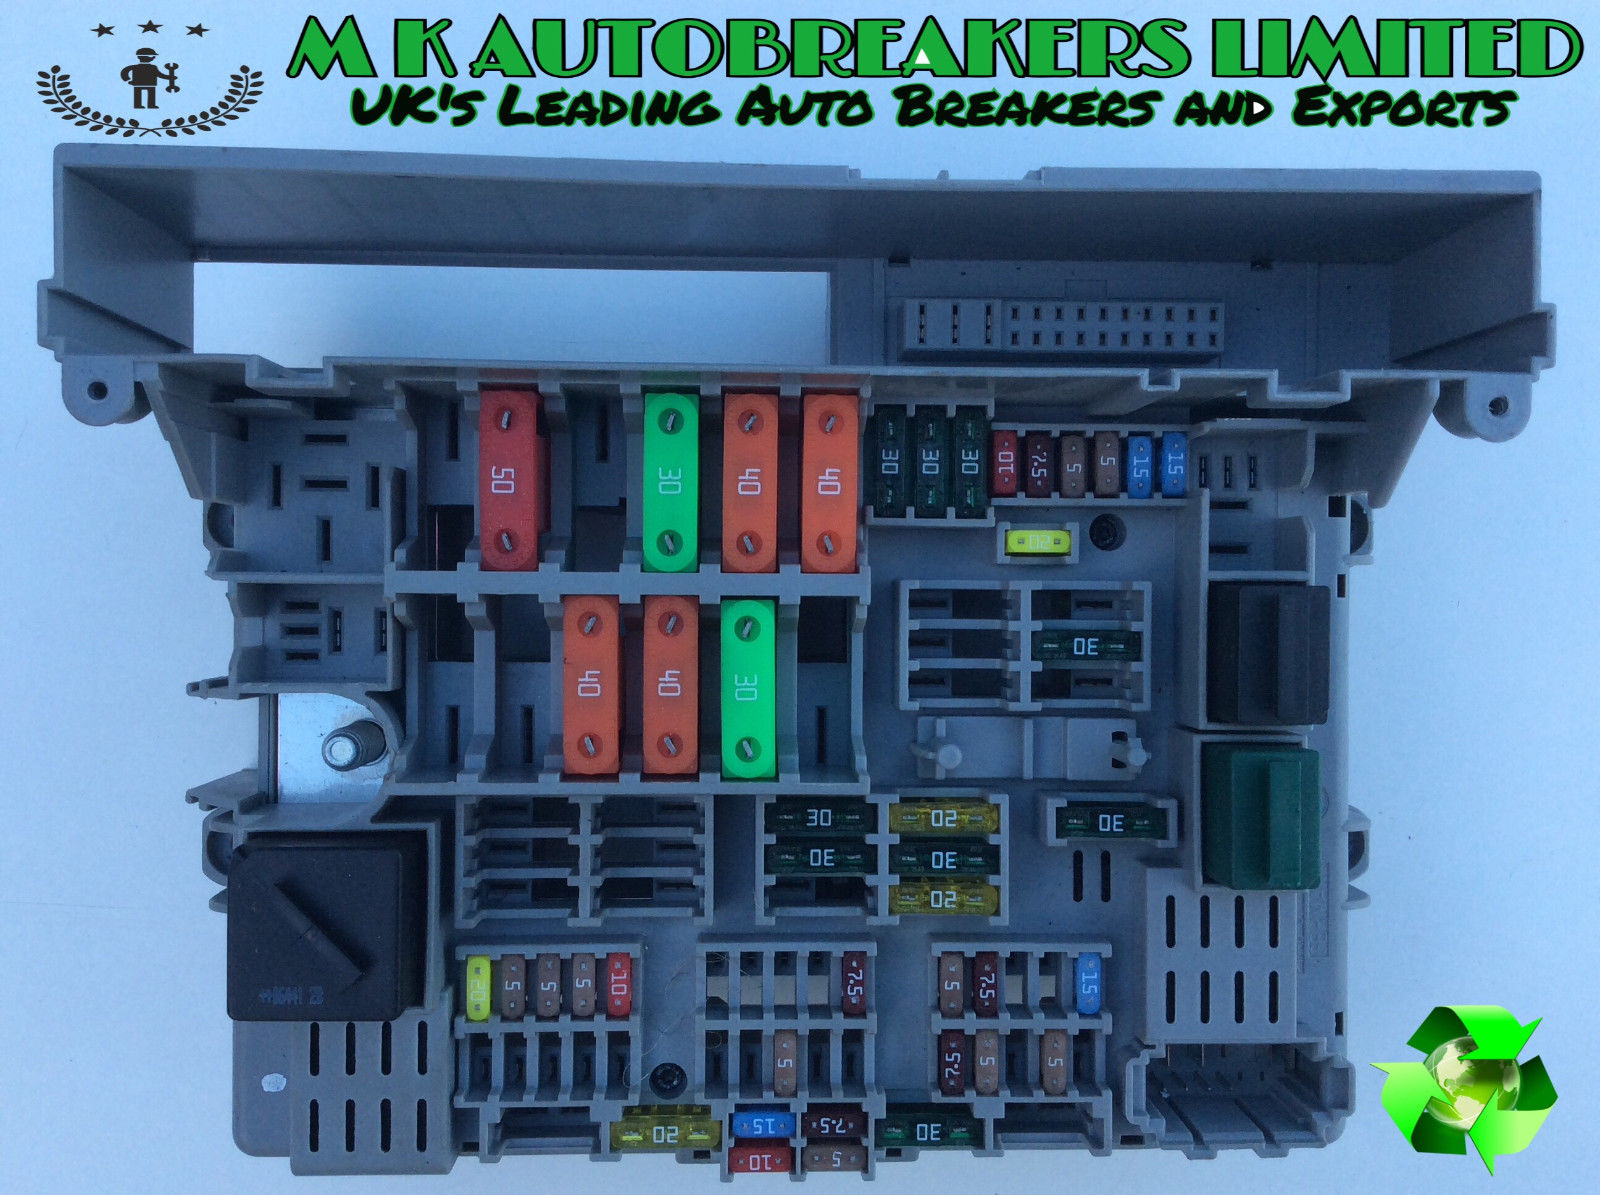 Fuse Box On A Bmw 3 Series - Wiring Diagrams Folder Bmw D E Fuse Box on